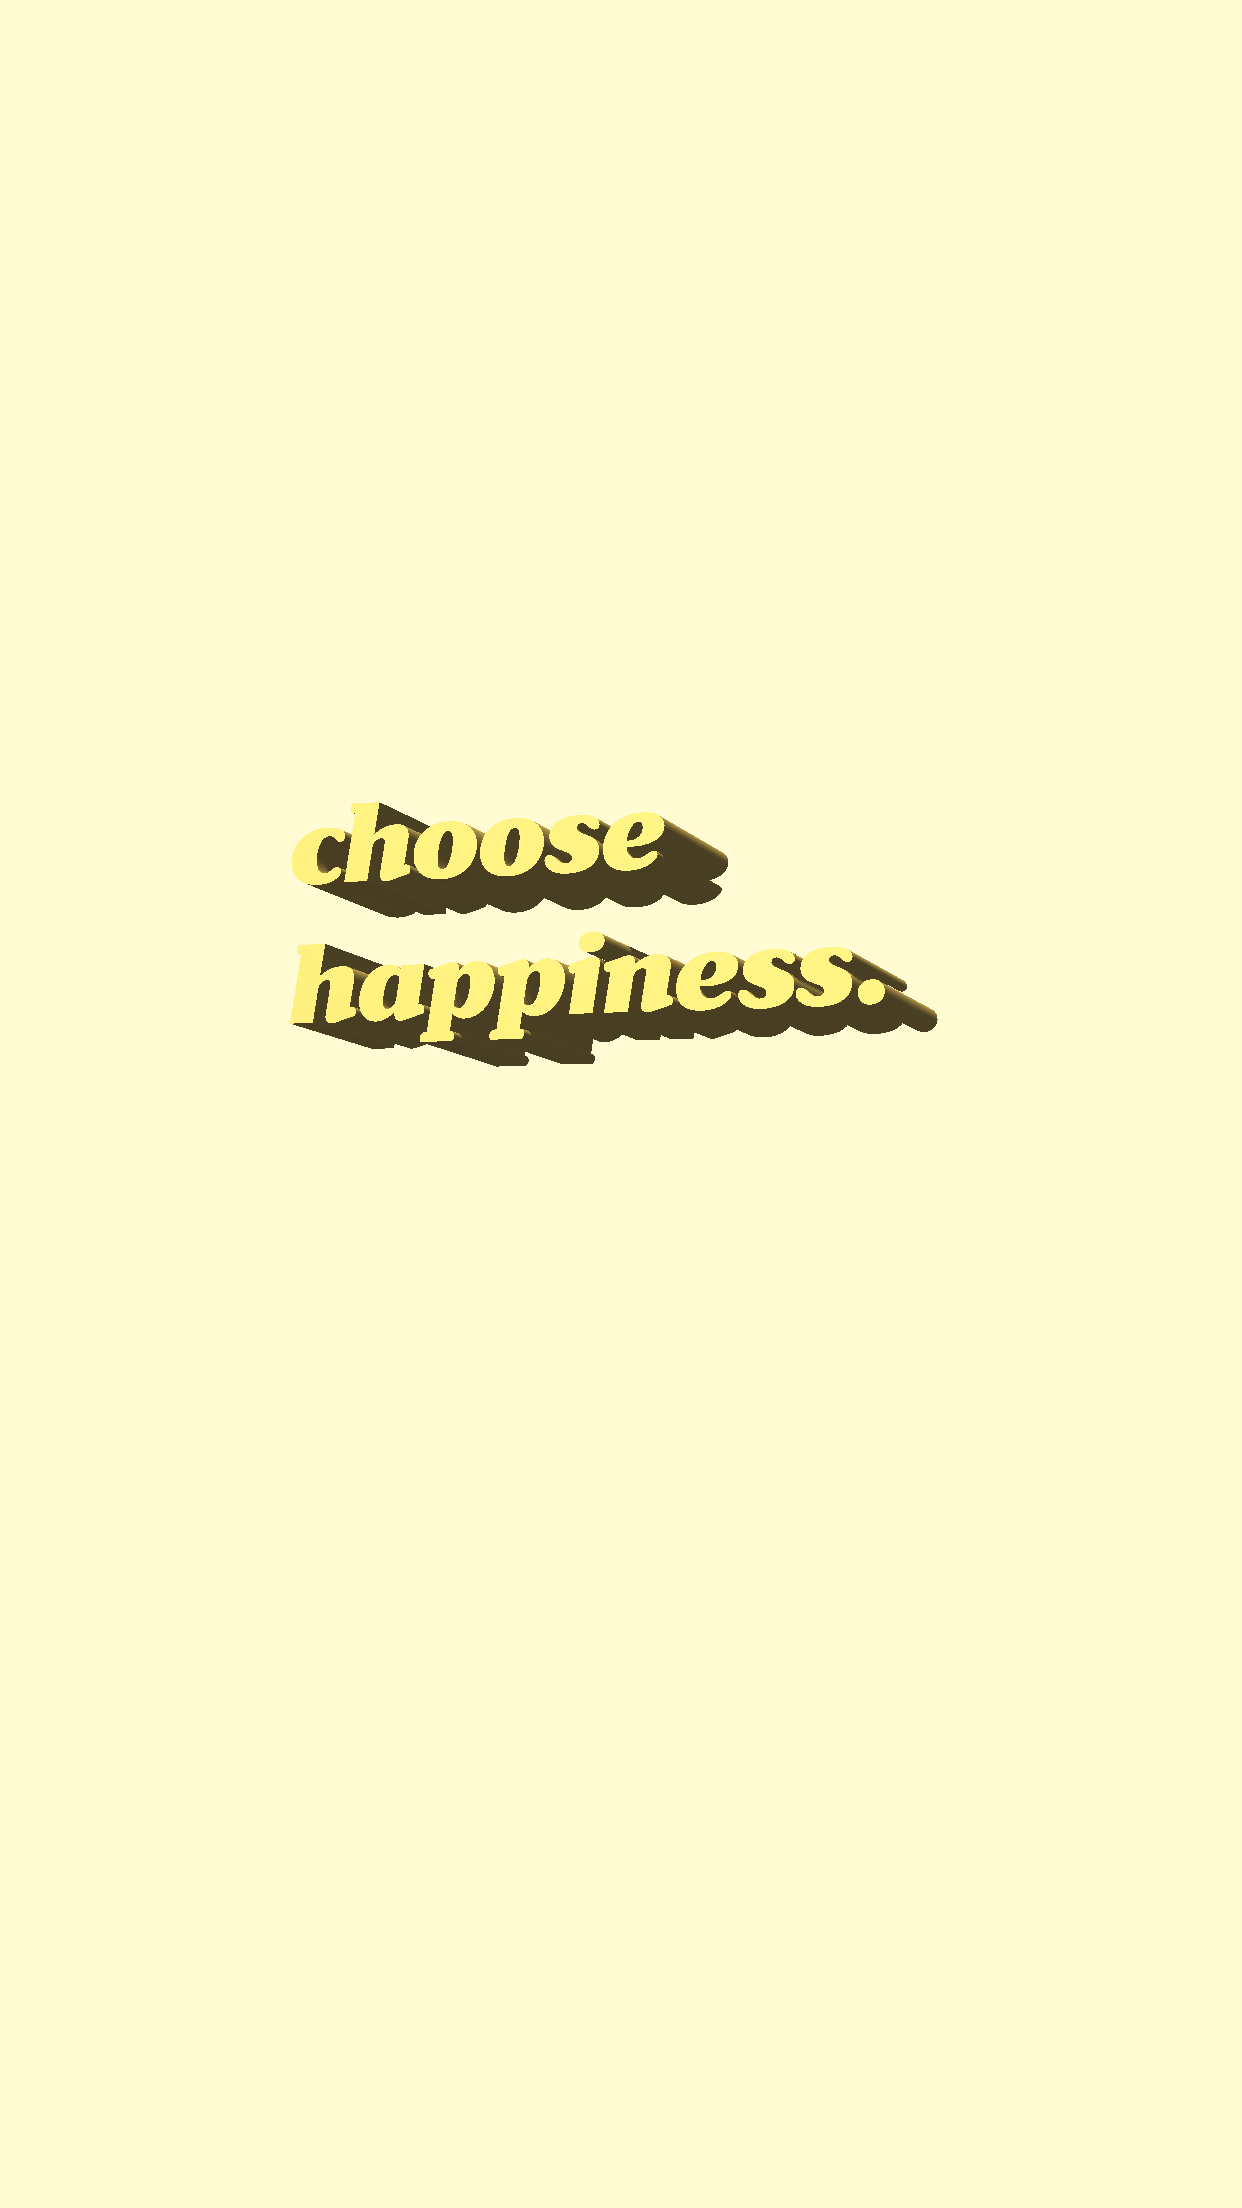 Choose Happiness. #quotes #motivational #words